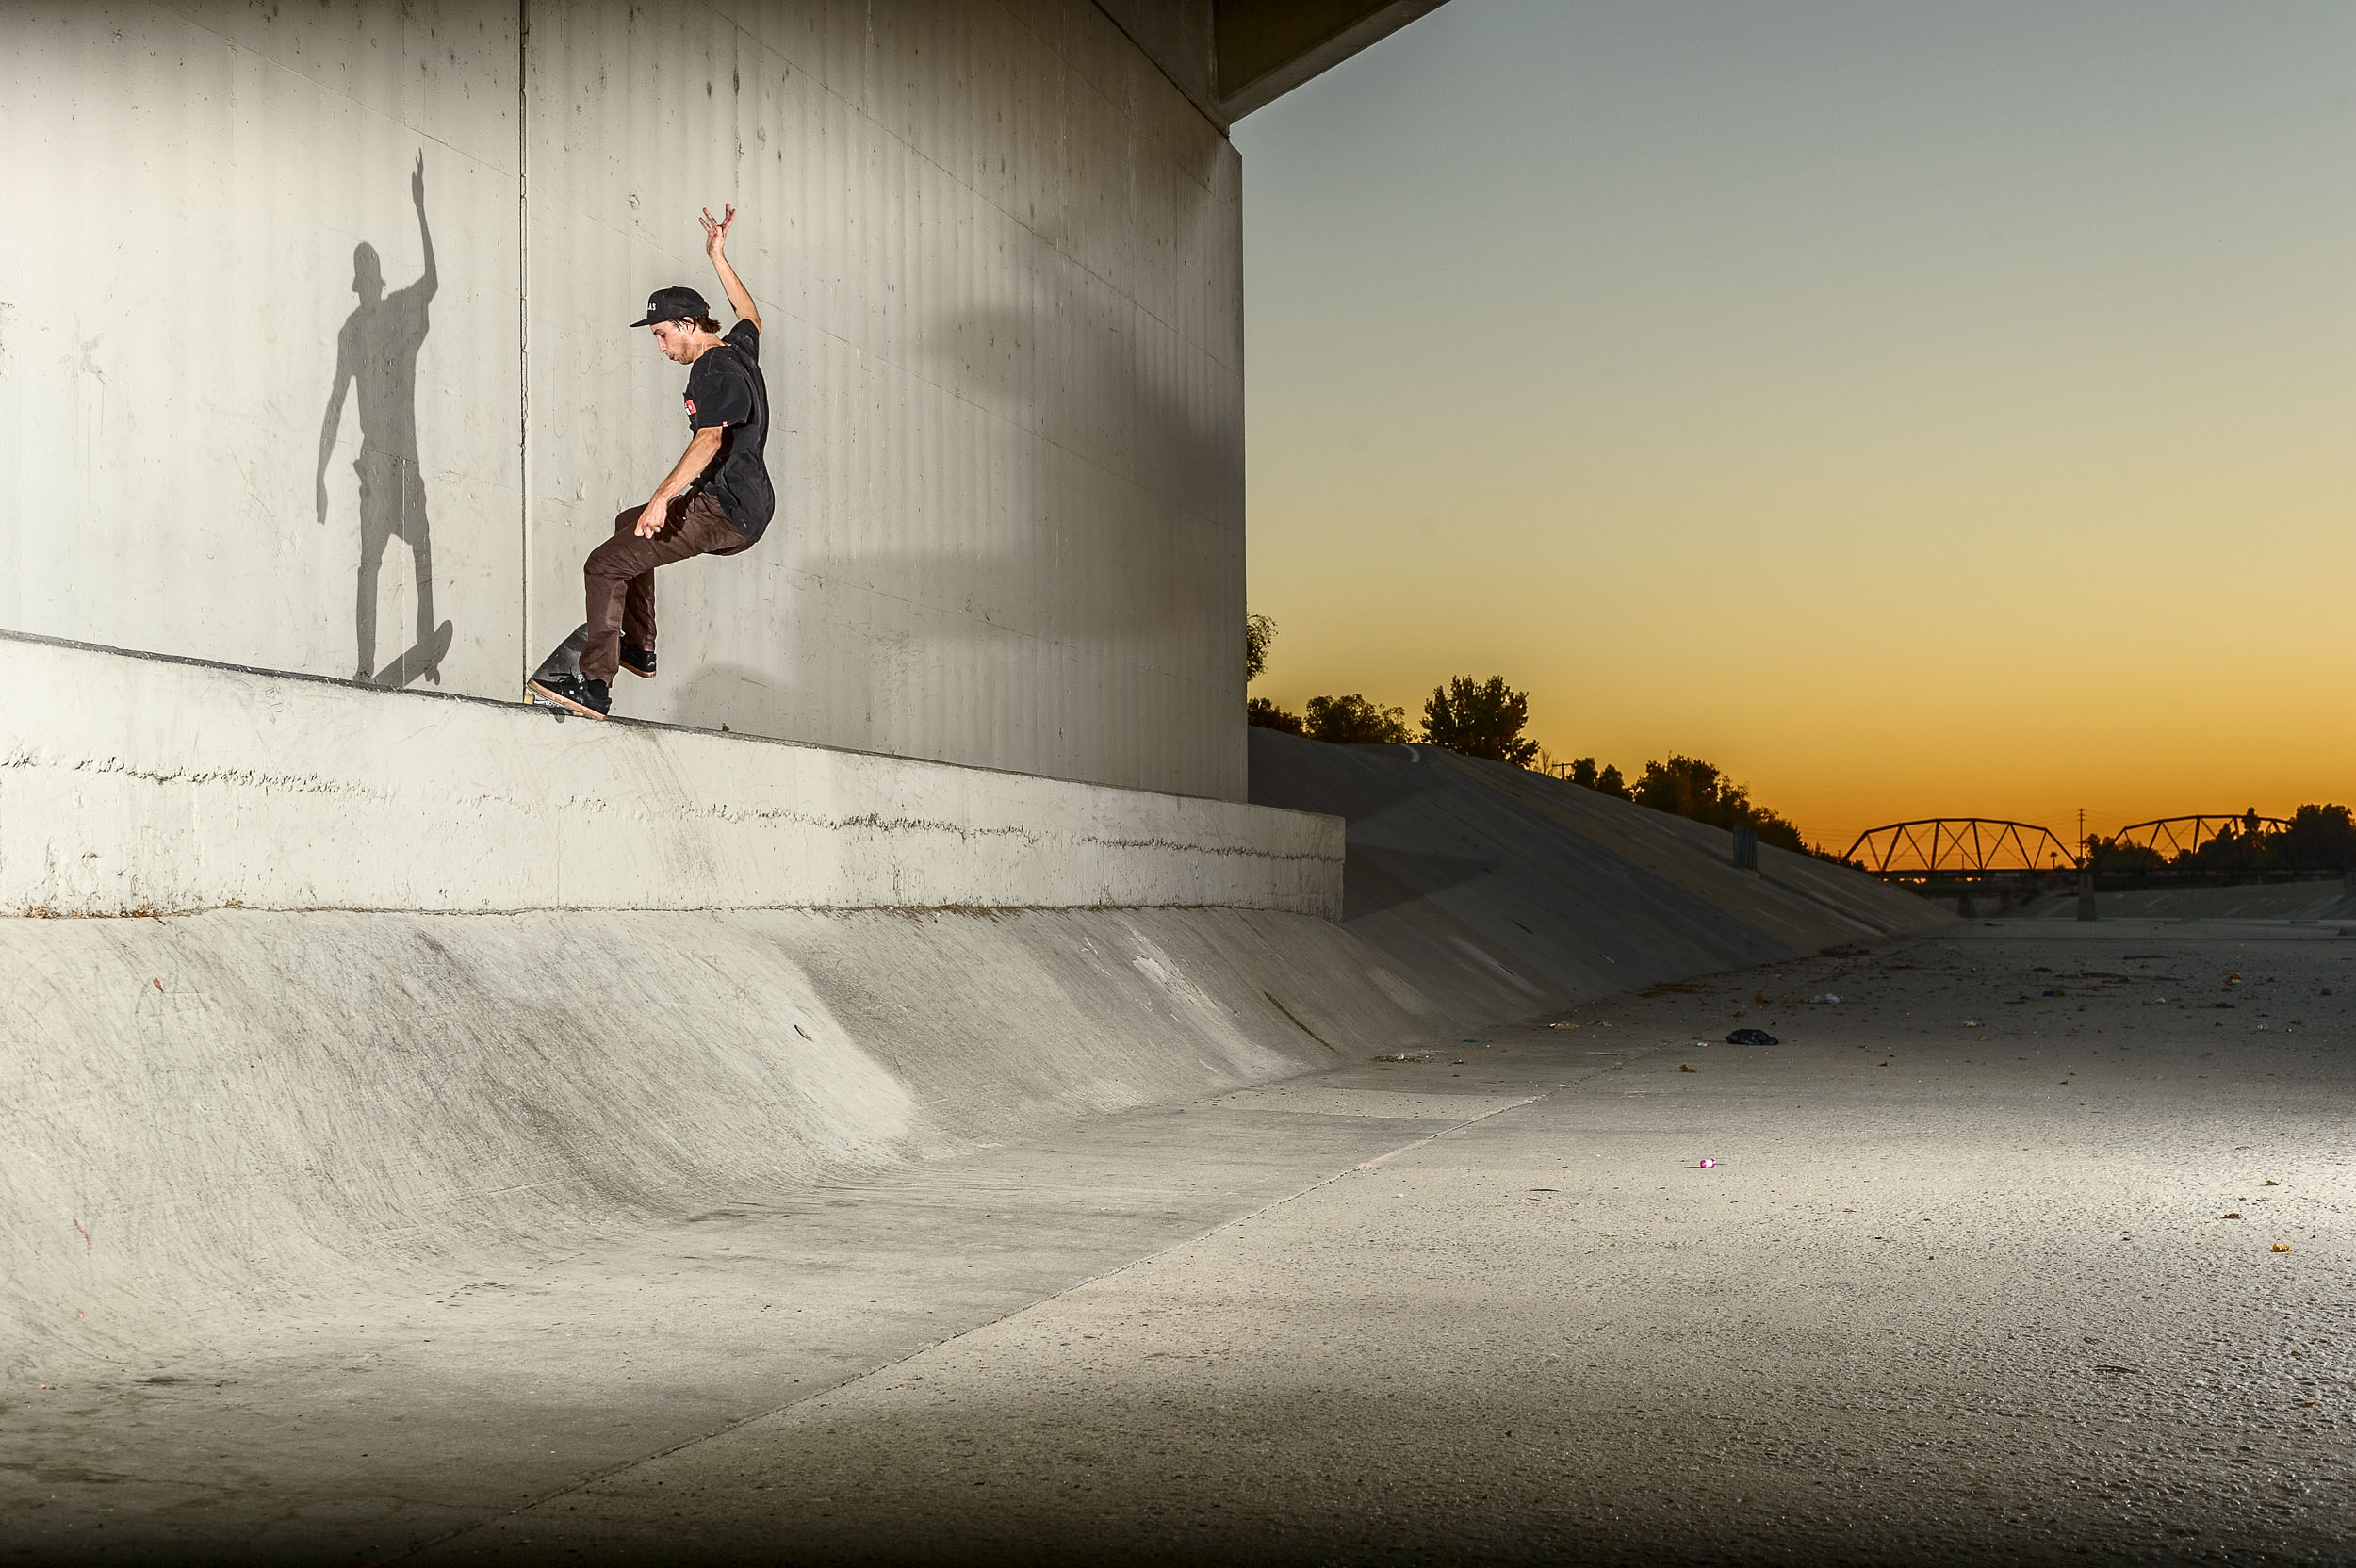 Charles_Deschamps_180Fakie5-0180_Flash.jpg